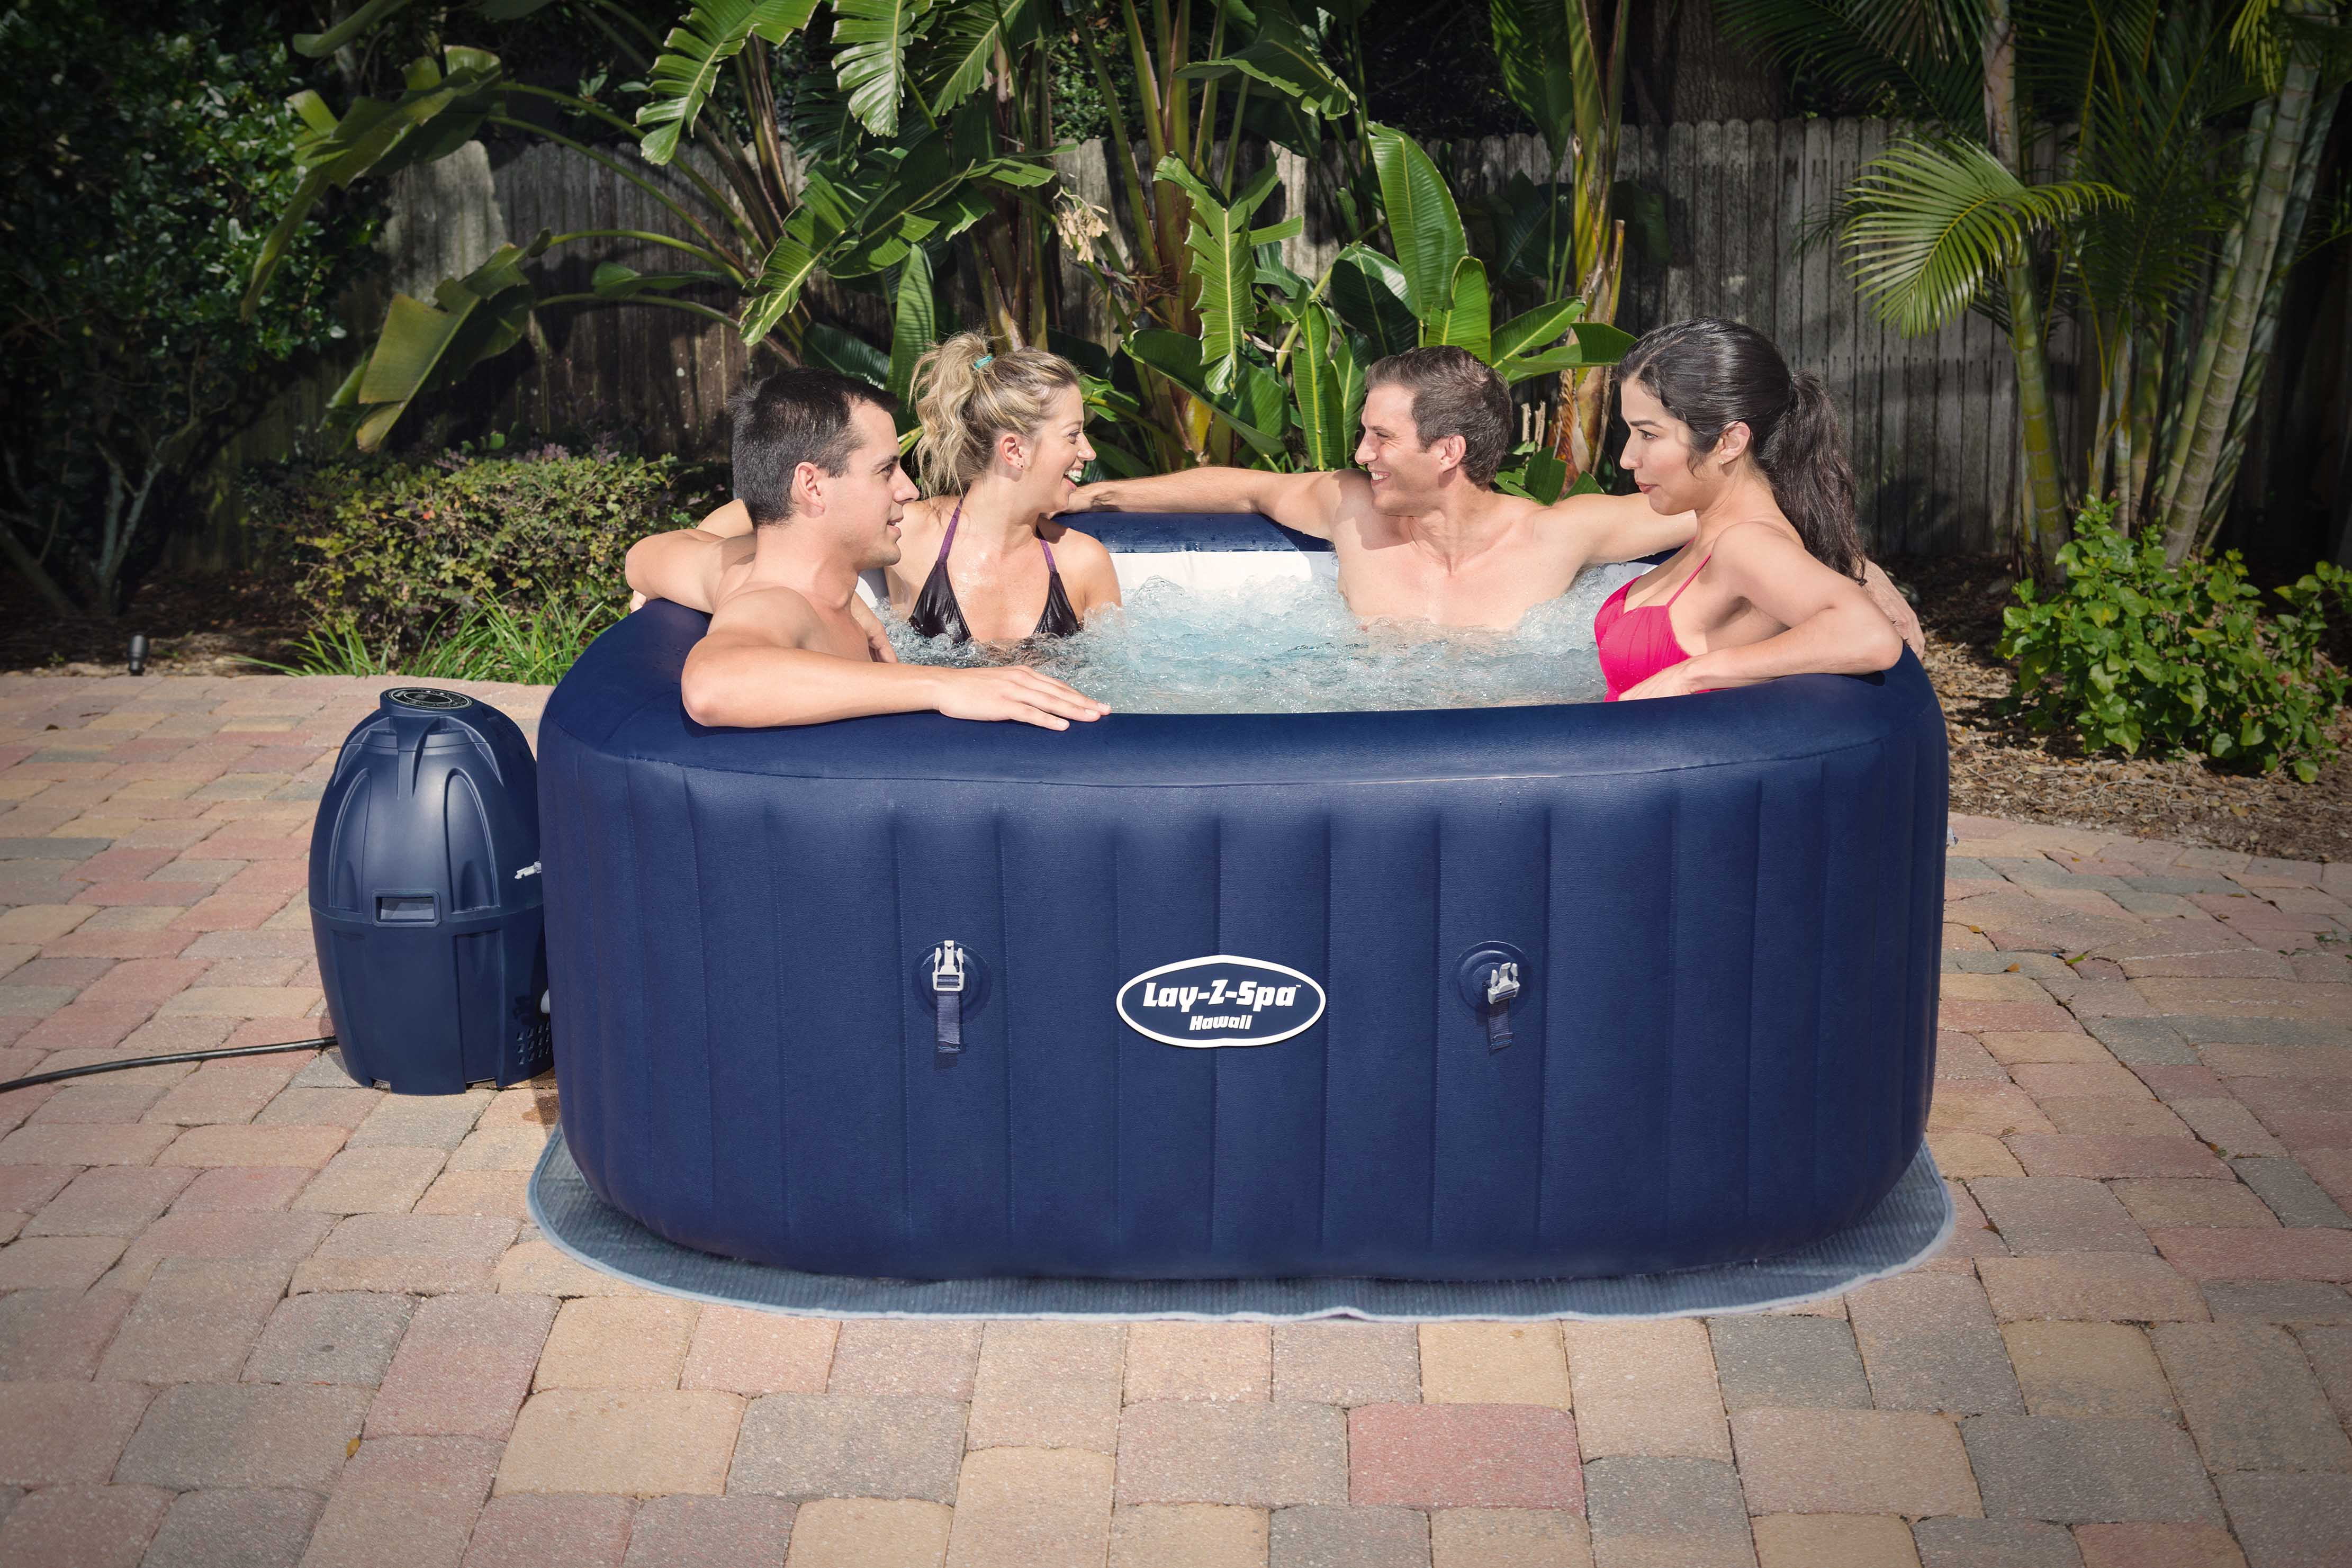 Jacuzzi Inflable Lay-Z-Spa Hawaii AirJet 800 Litros Bestway